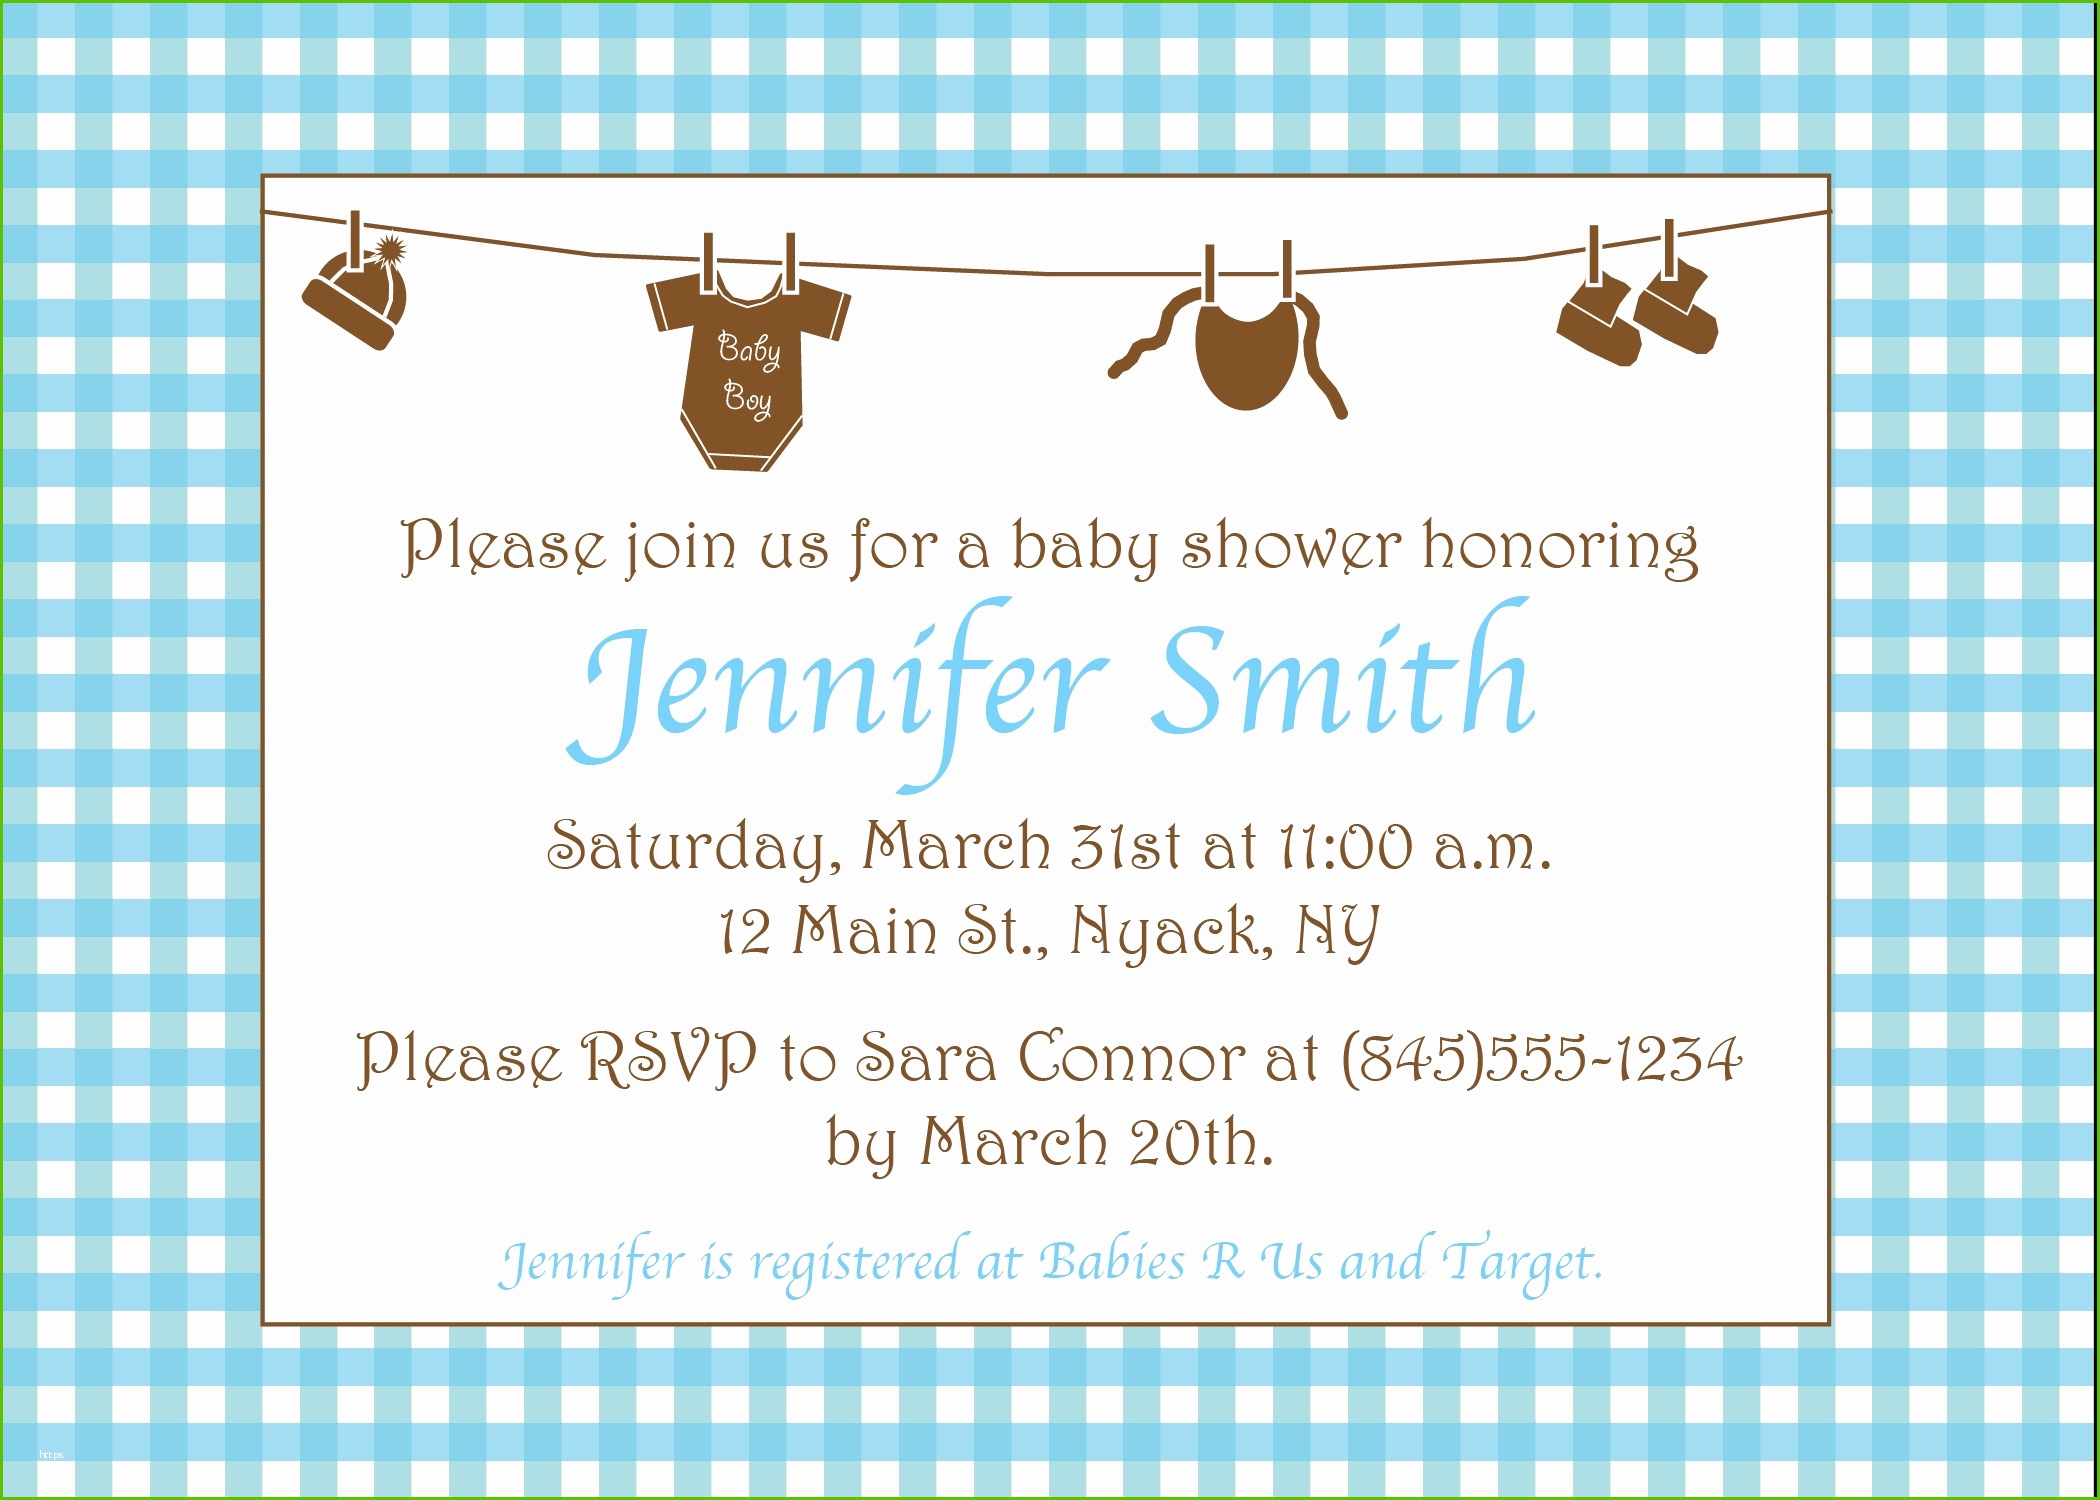 Baby shower invitation wording or baby shower names with arreglos full size of baby showerbaby shower invitation wording or baby shower names with arreglos filmwisefo